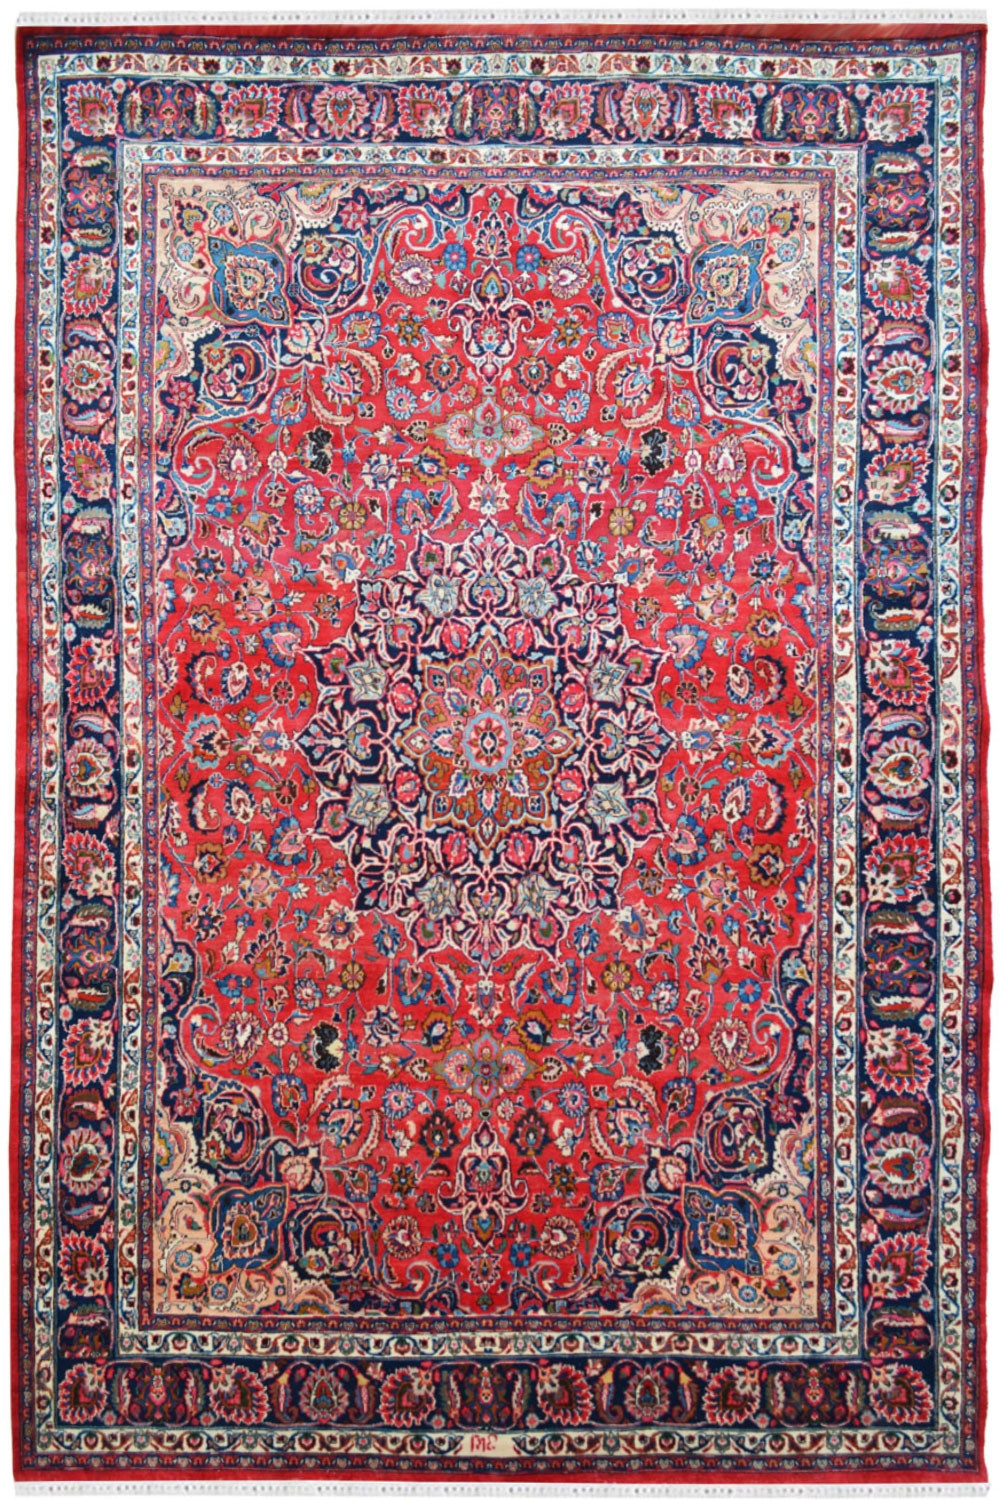 Mesched Chakra Rug Wool Rugs For Sale Online